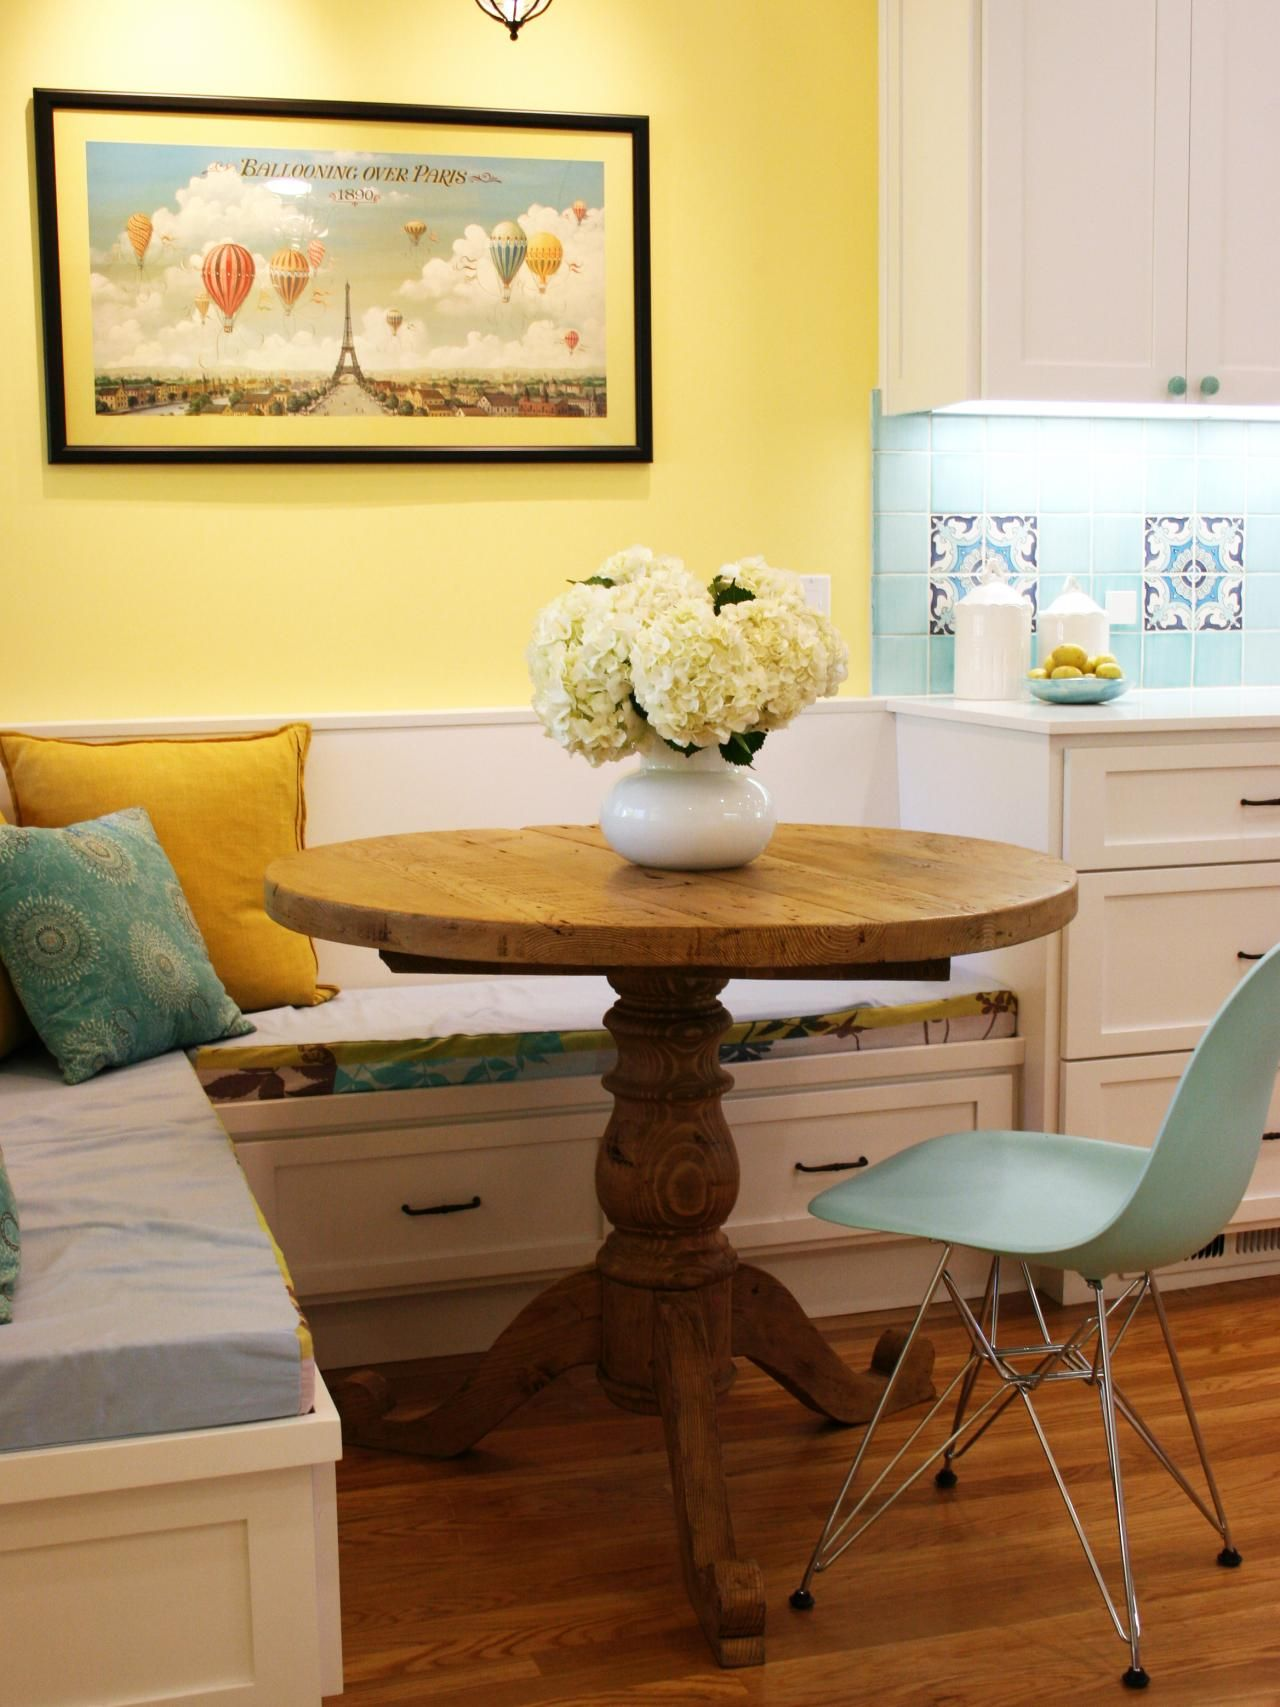 Share Your Breakfast In Charming Kitchen Banquette Corner Banquette Seating For Kitchen